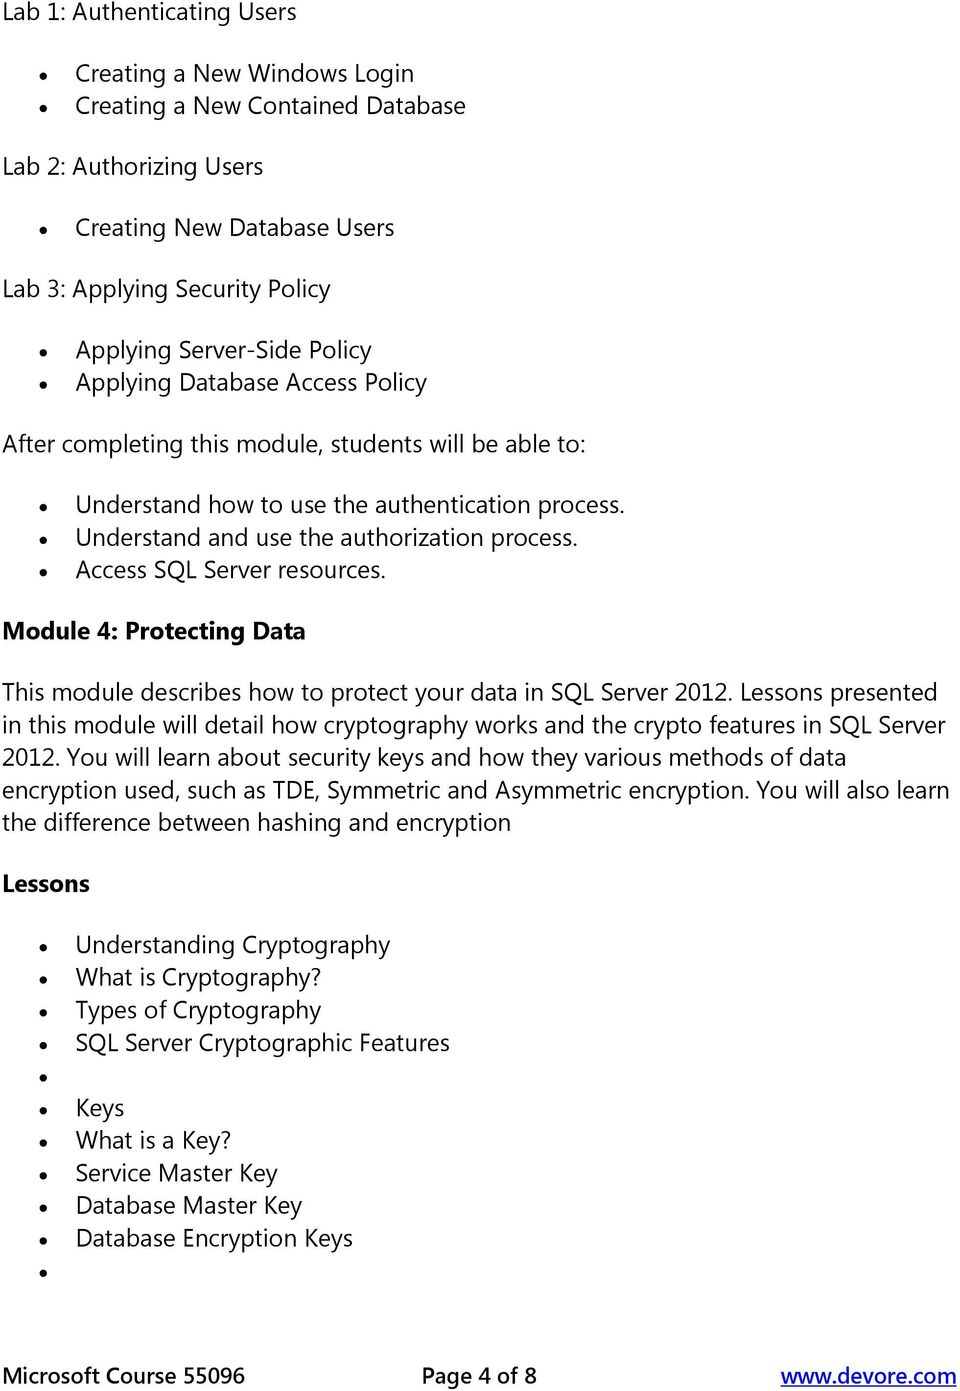 Module 4: Protecting Data This module describes how to protect your data in SQL Server 2012. presented in this module will detail how cryptography works and the crypto features in SQL Server 2012.